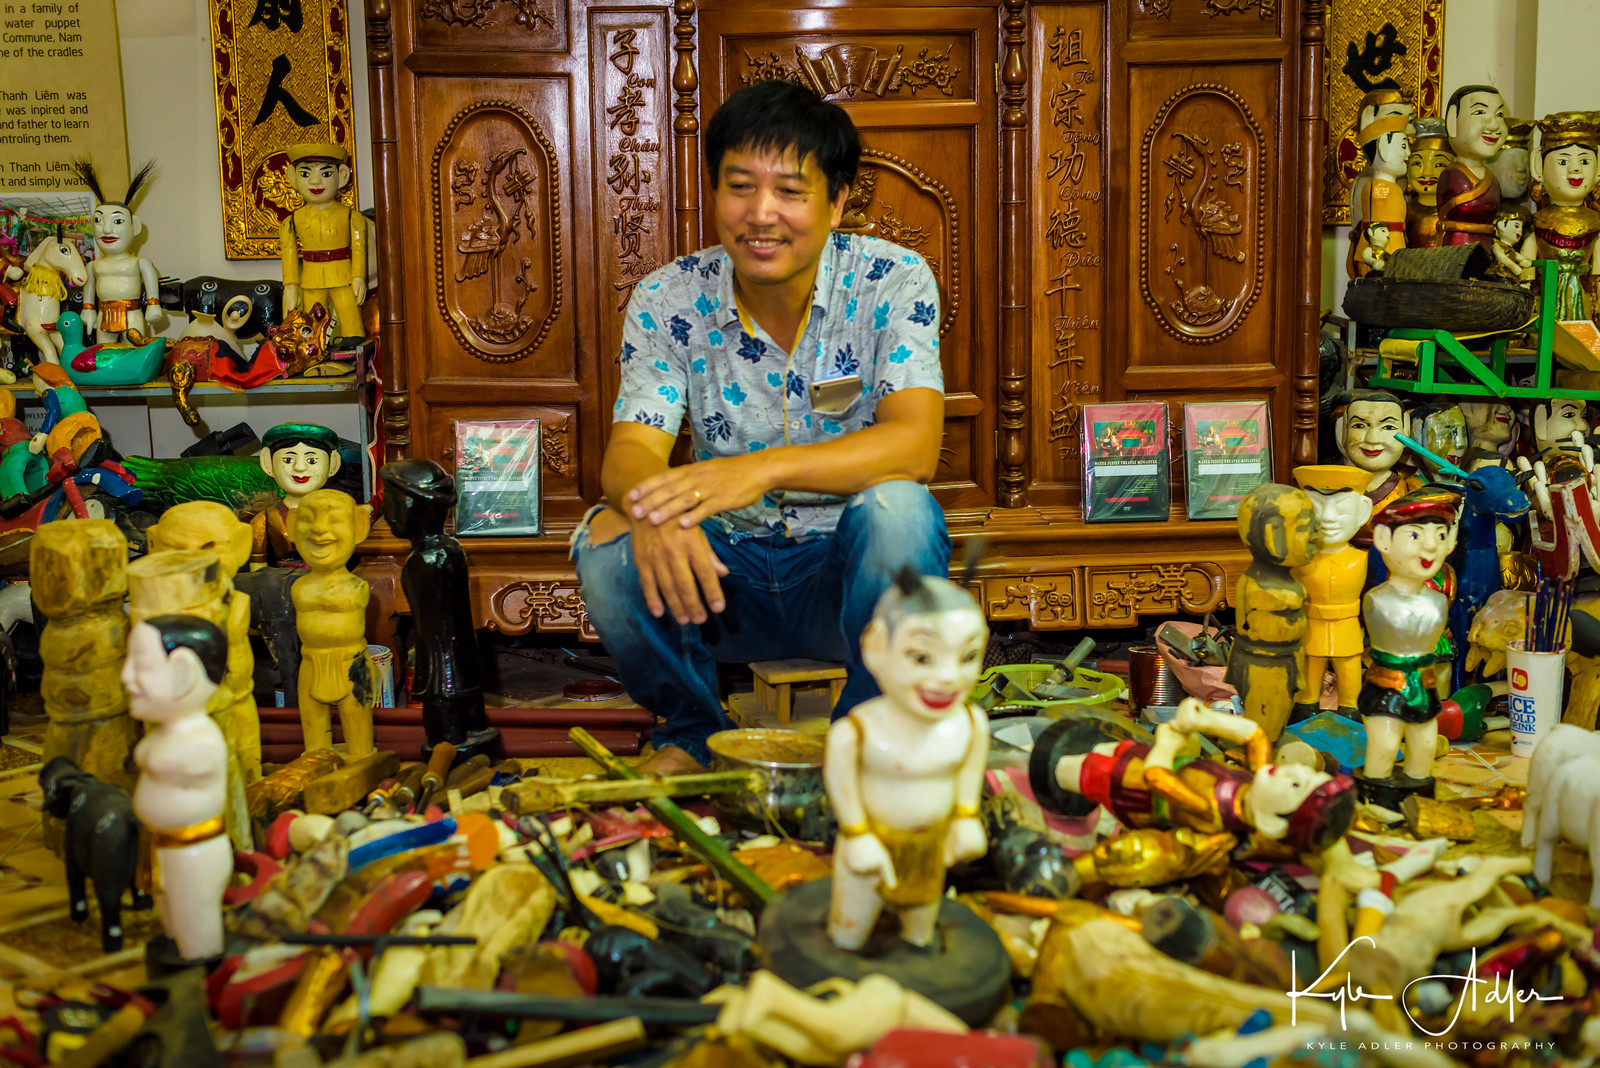 Mr. Phan in his workshop with just a few of the puppets he has crafted.  We purchased two puppets as souvenirs of our visit.